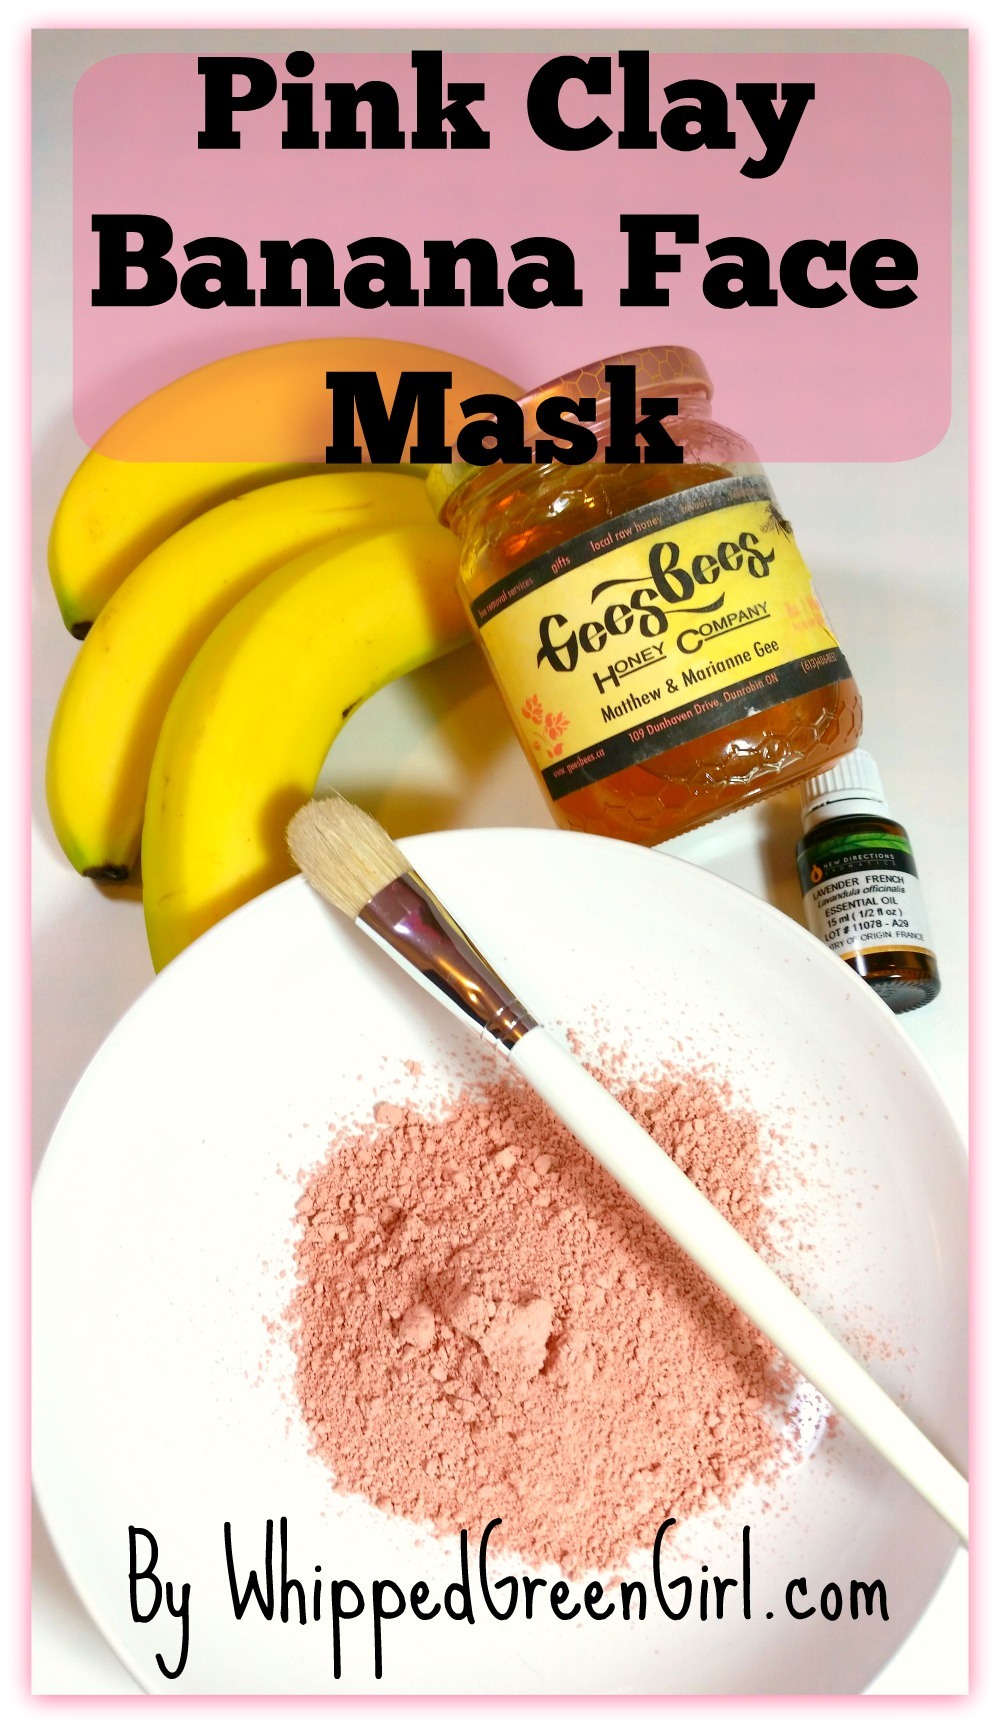 Pink Clay Banana Face Mask (by WhippedGreenGirl.com) #DIY #Skincare #organic